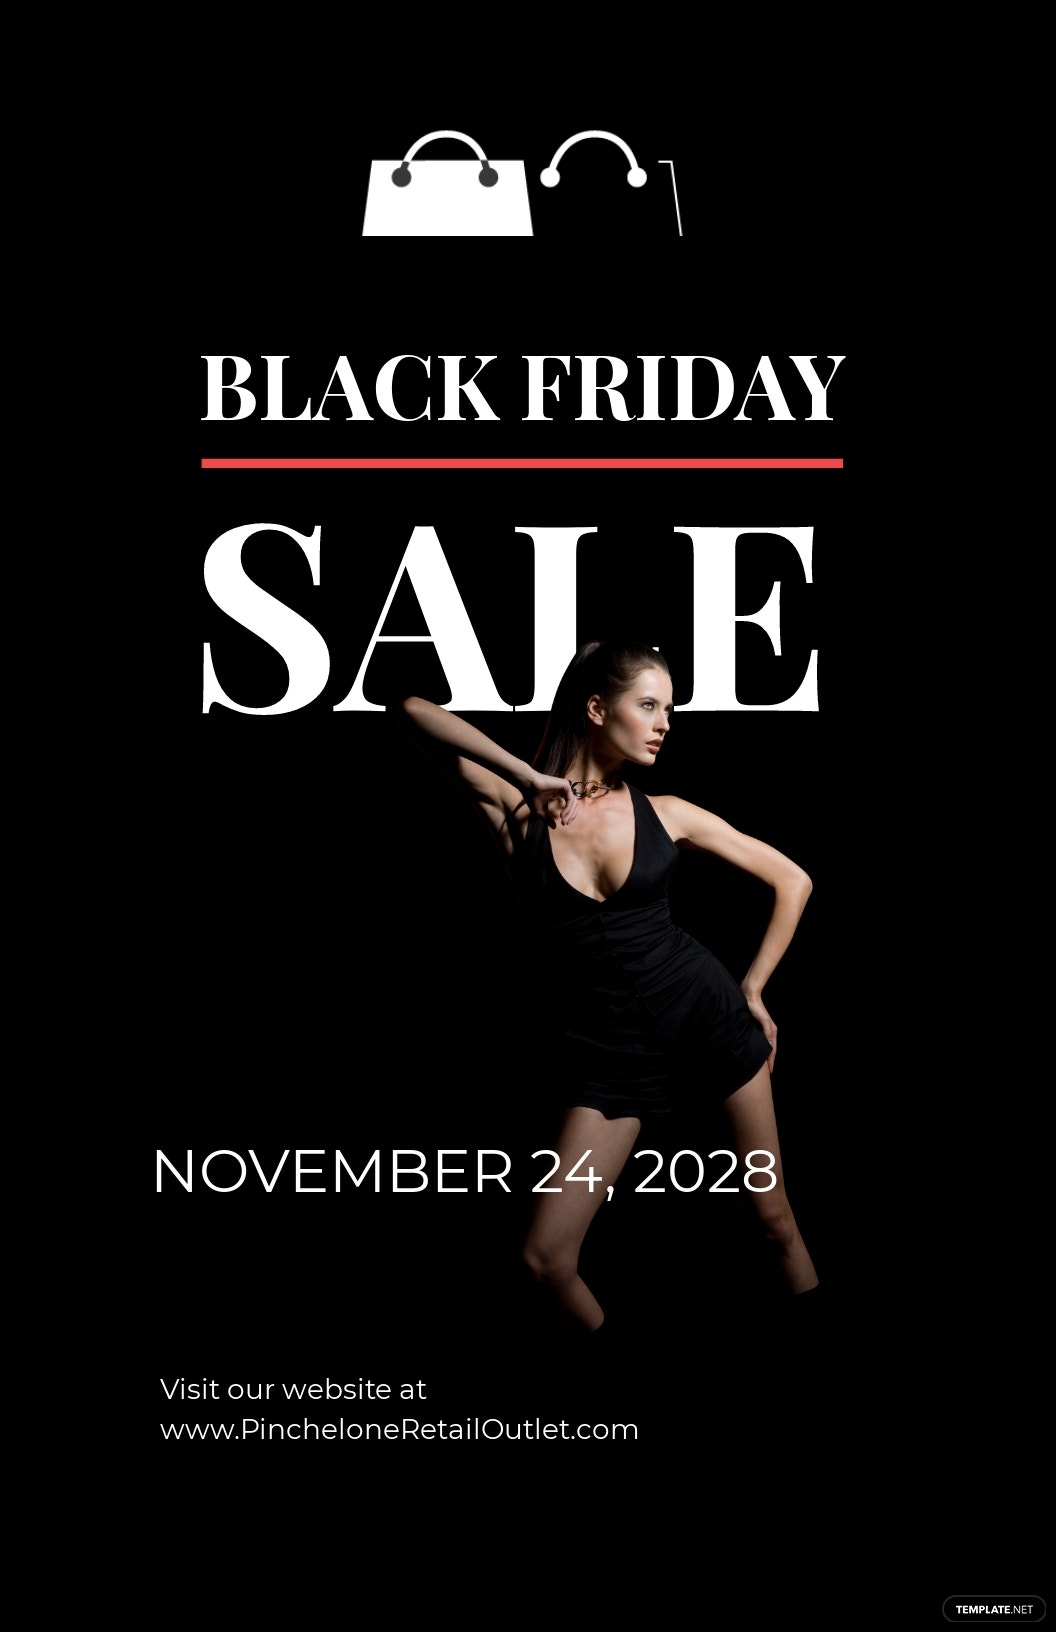 Black Friday Deal Poster Template